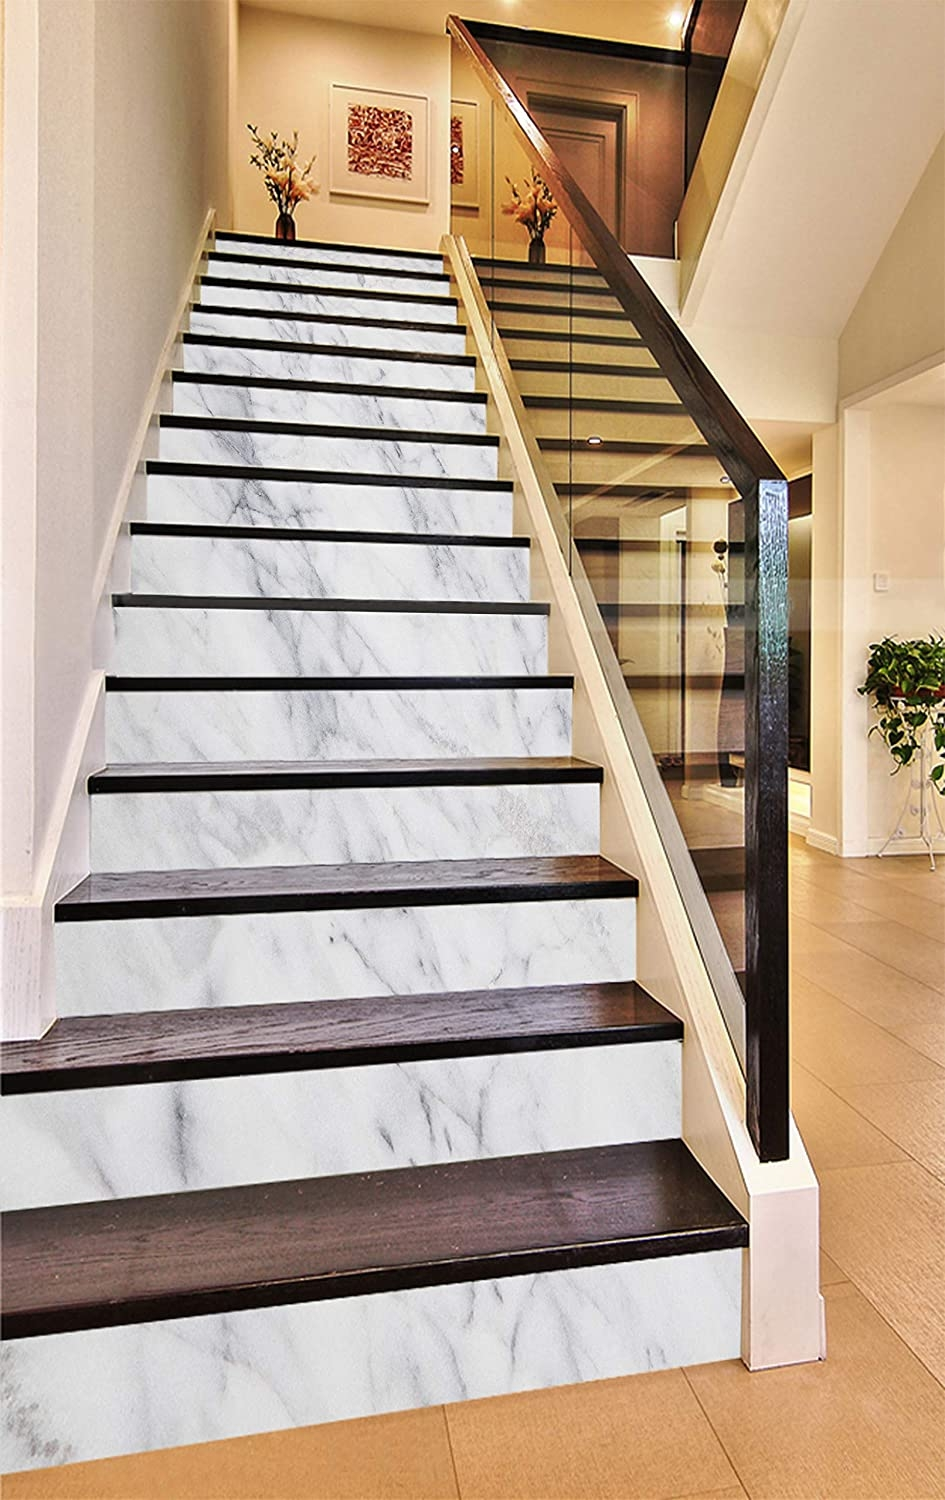 3D Elegant White 937 Pattern Tile Marble Stair Risers Decoration | Wood Steps With White Risers | Timber | Wood Stair | Before And After | Color | Stair Tread